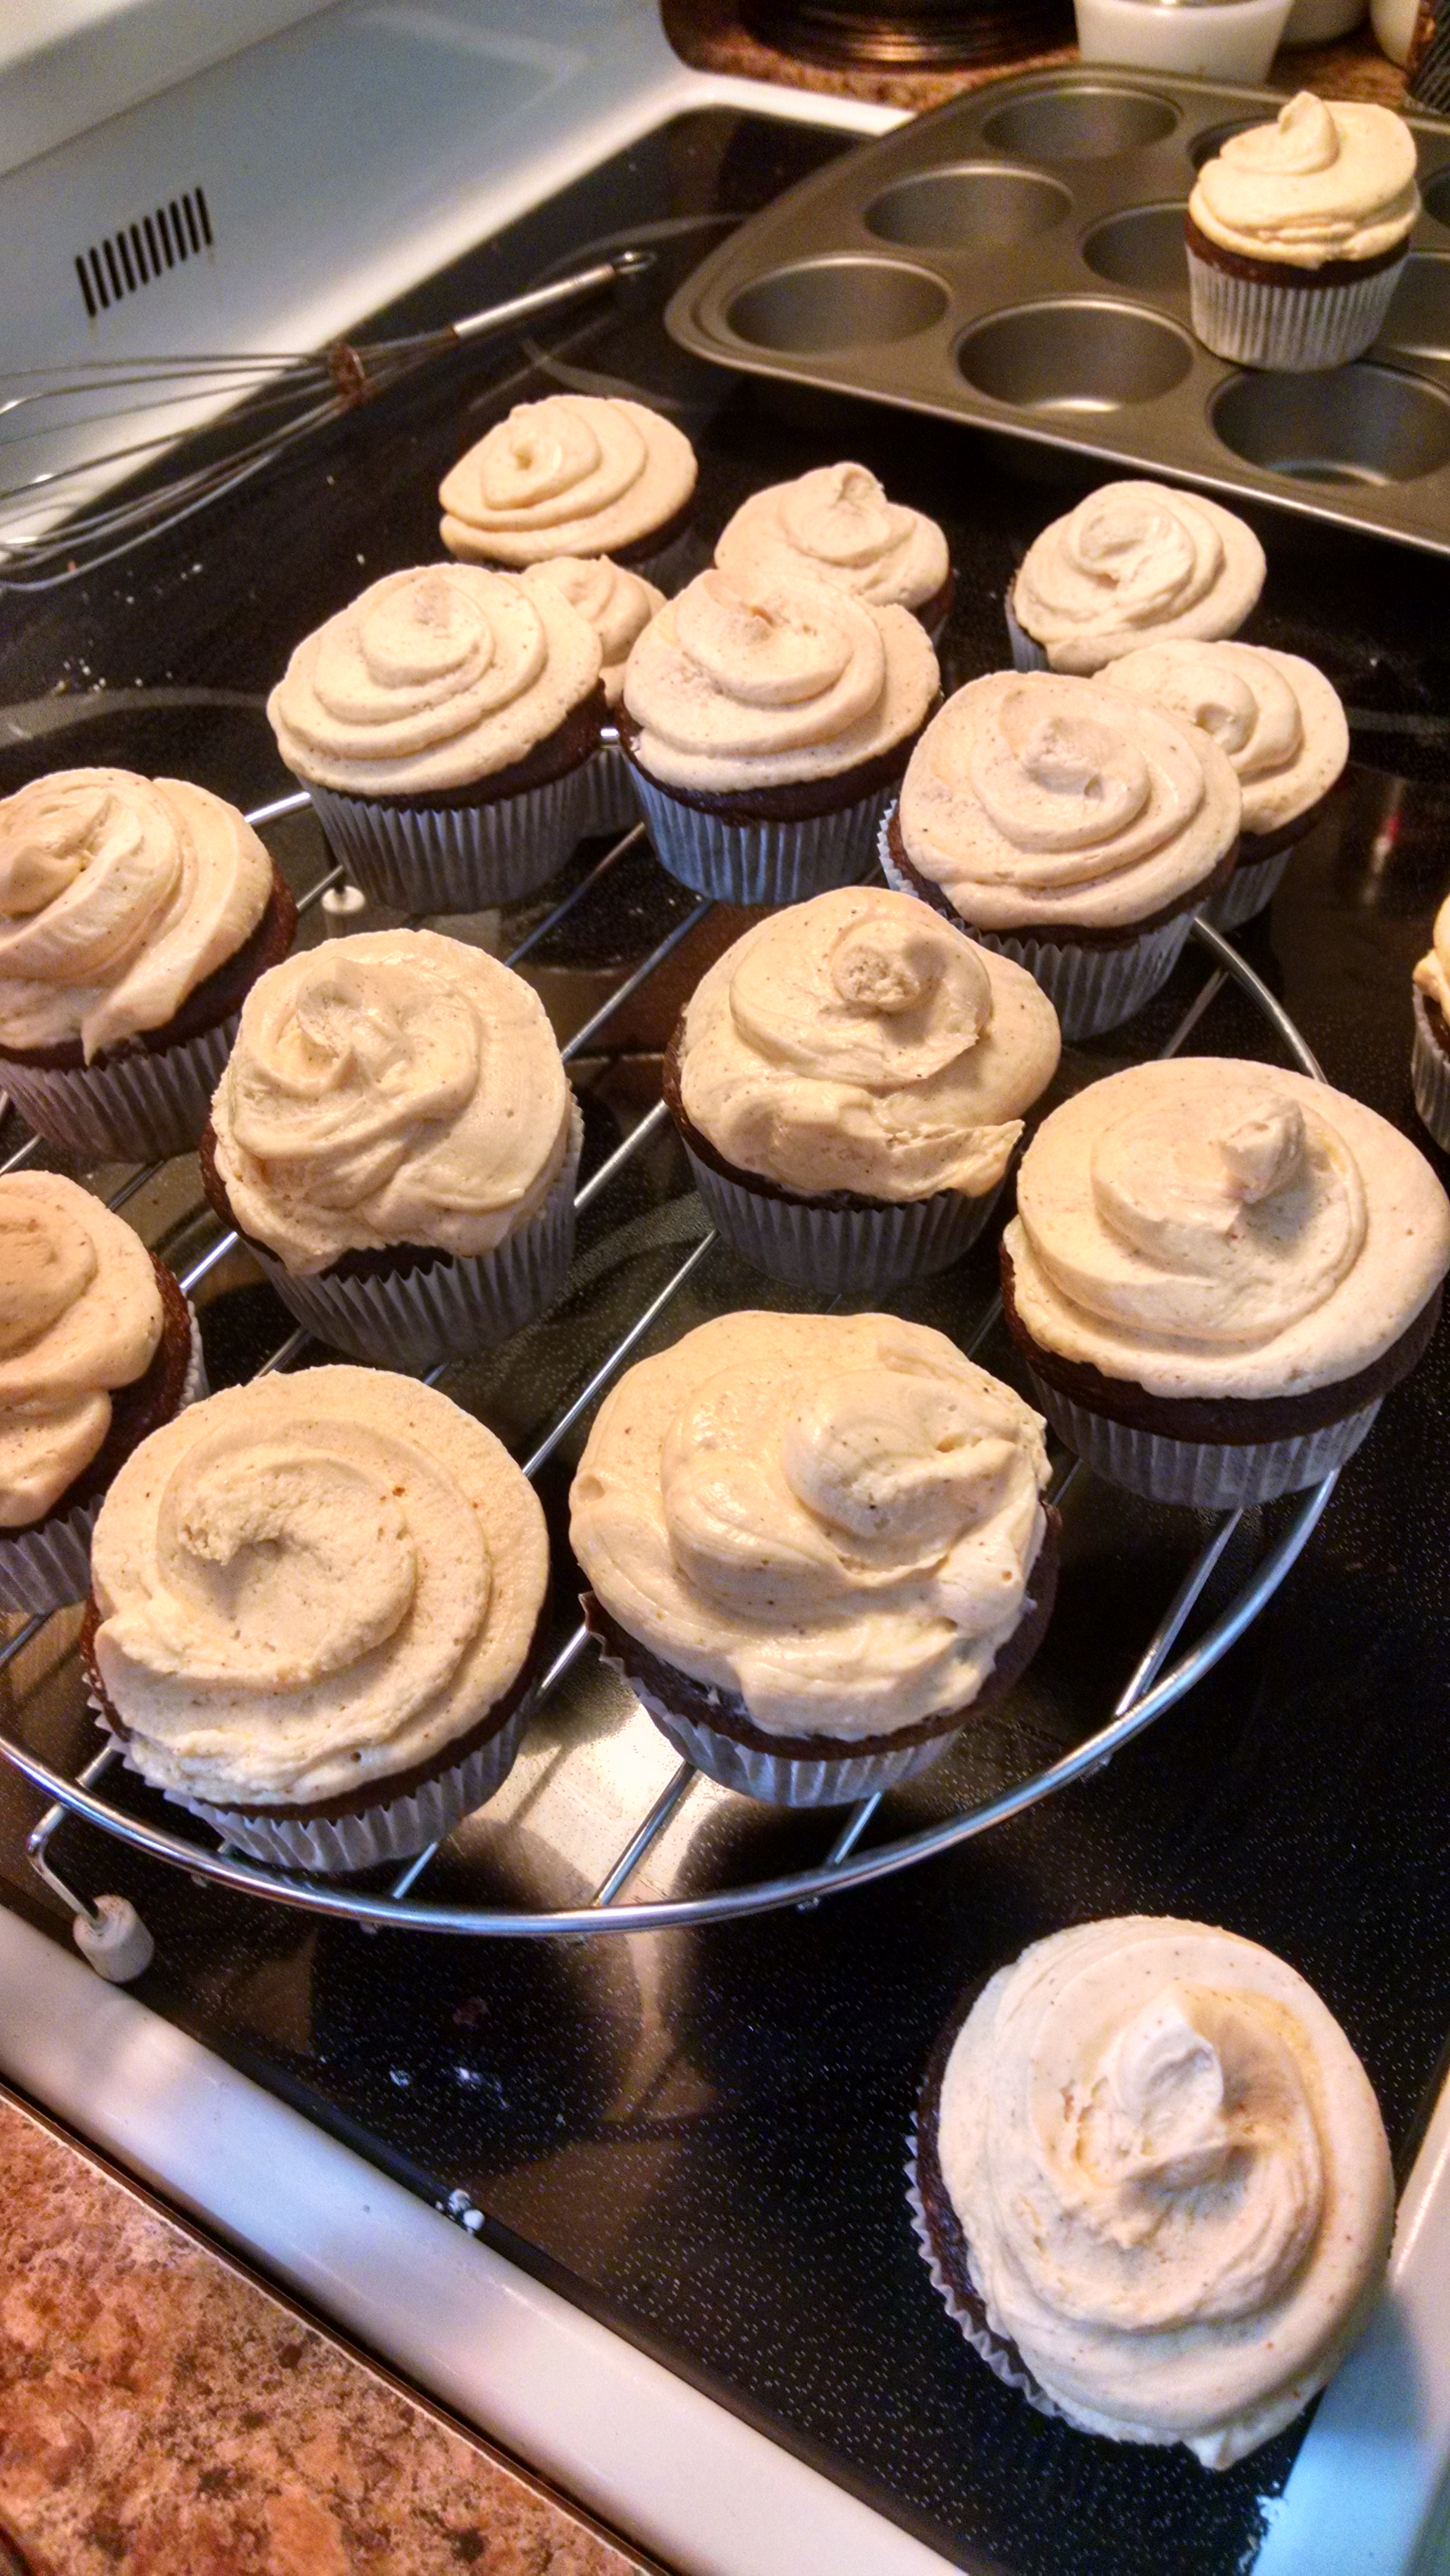 Cinco de Chili Chocolate Cupcakes with Chili Cream Cheese Frosting Dave Starr